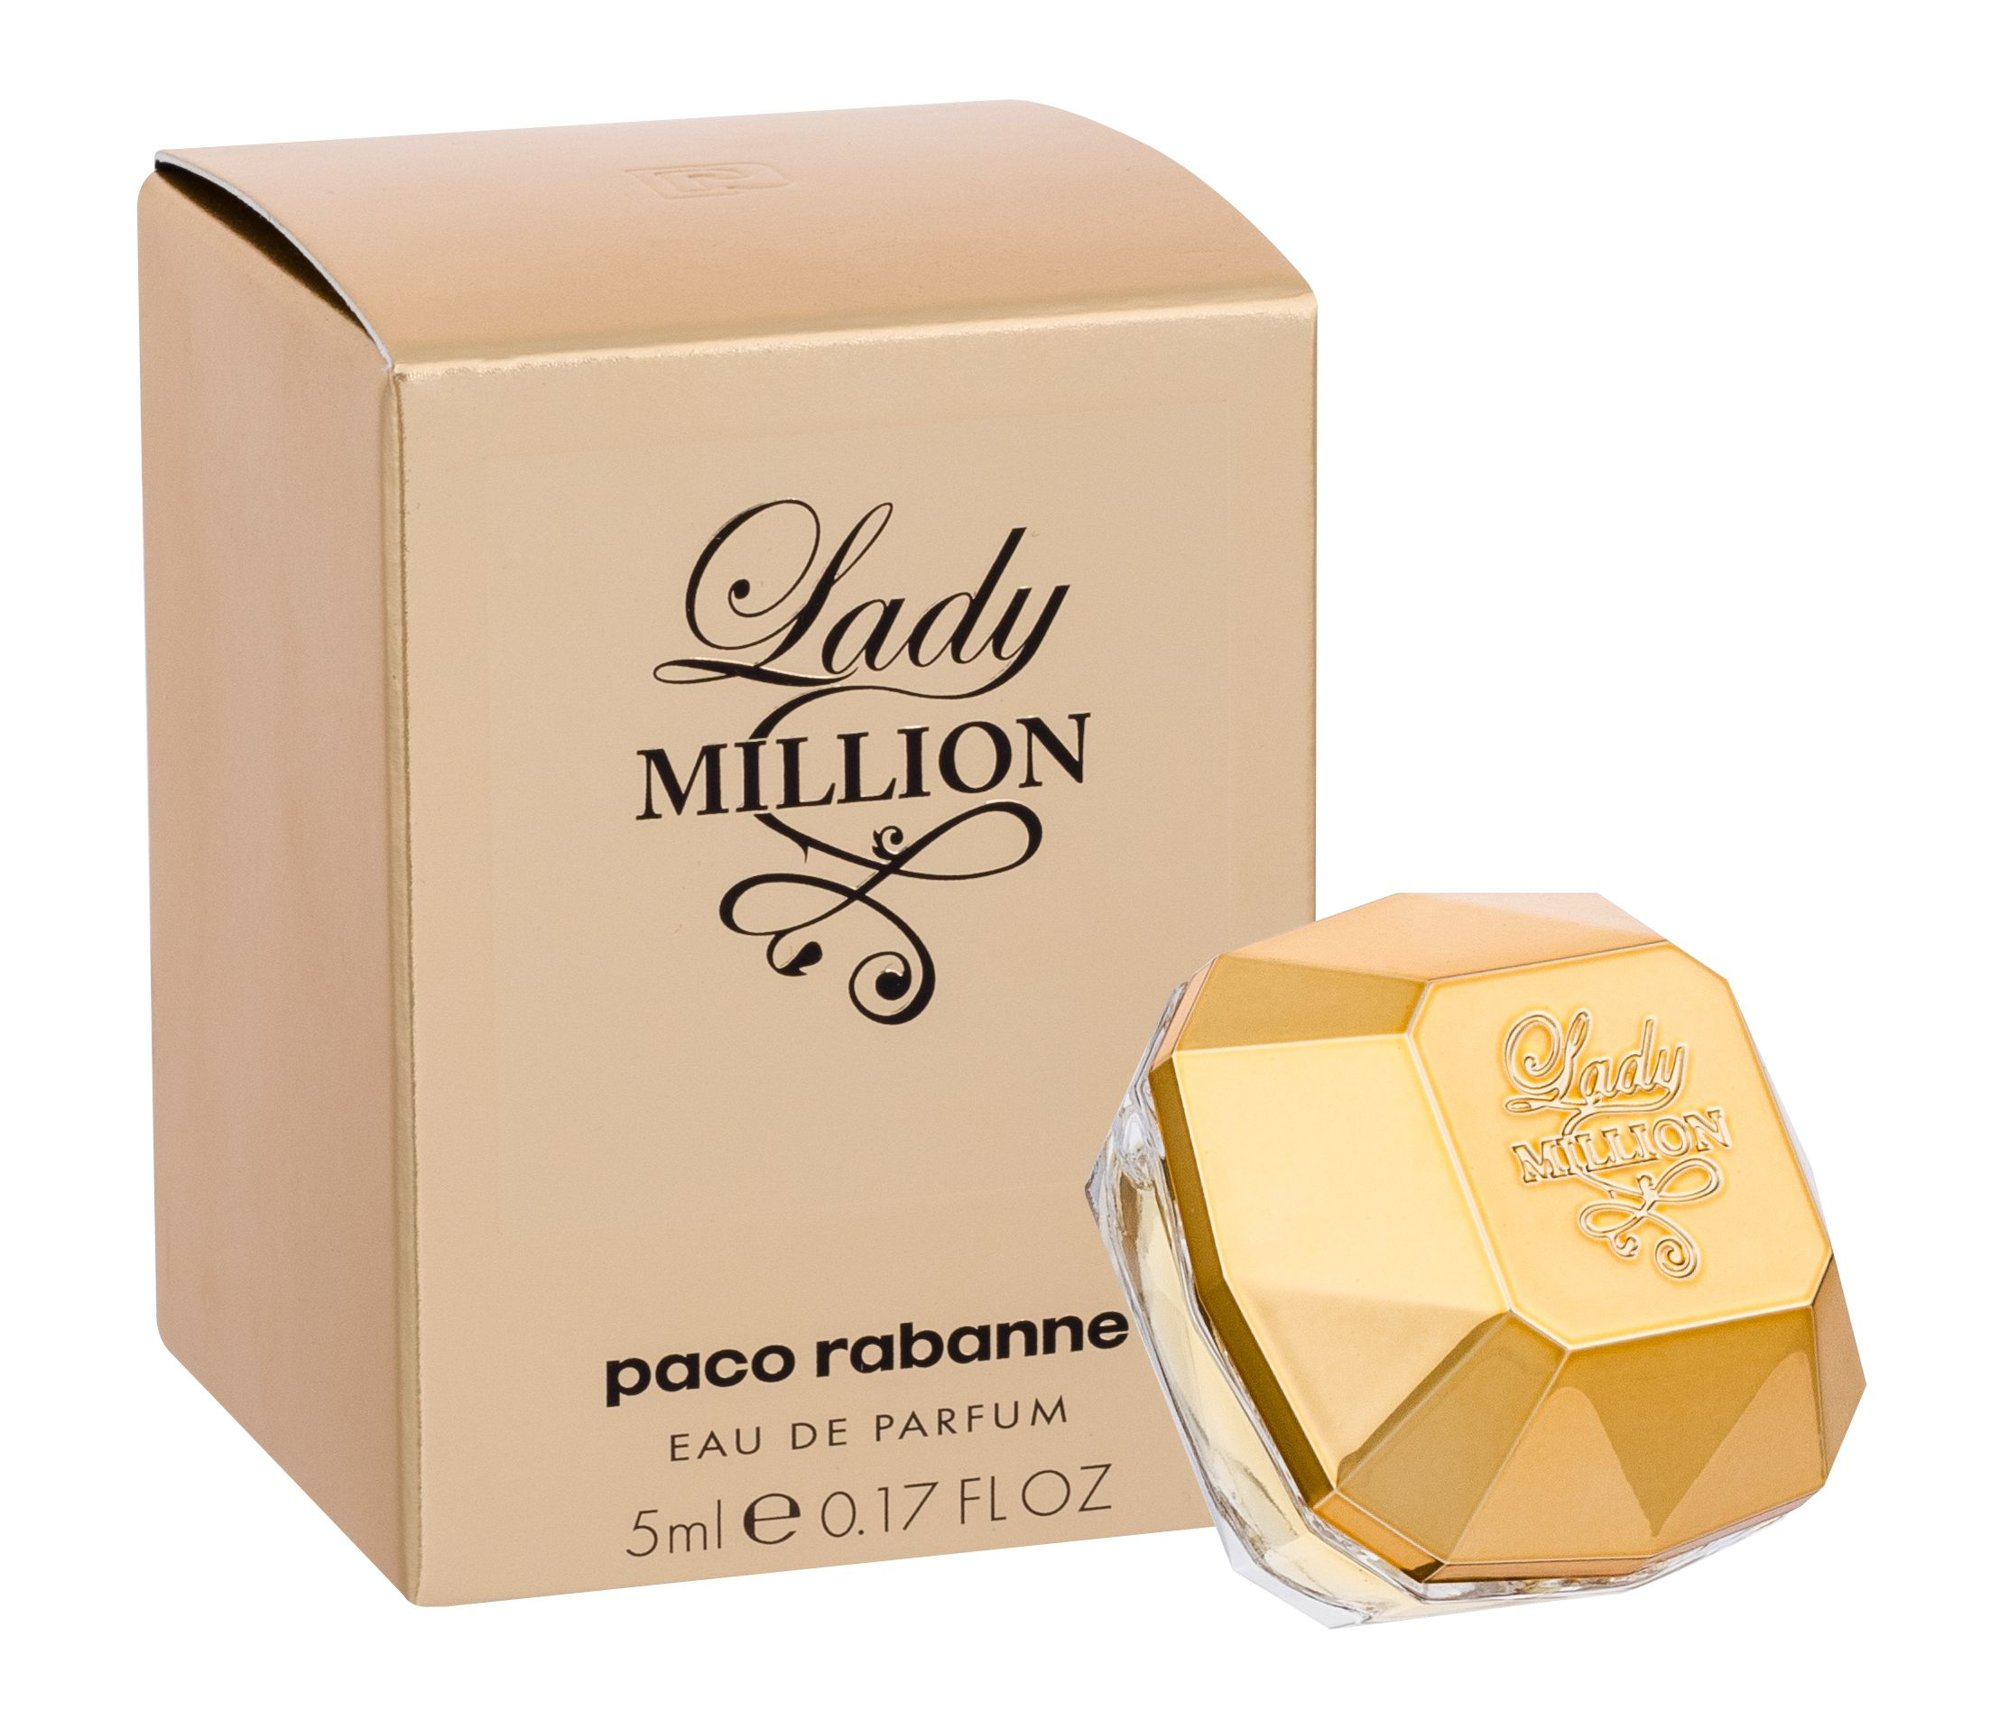 Paco Rabanne Lady Million EDP 5ml